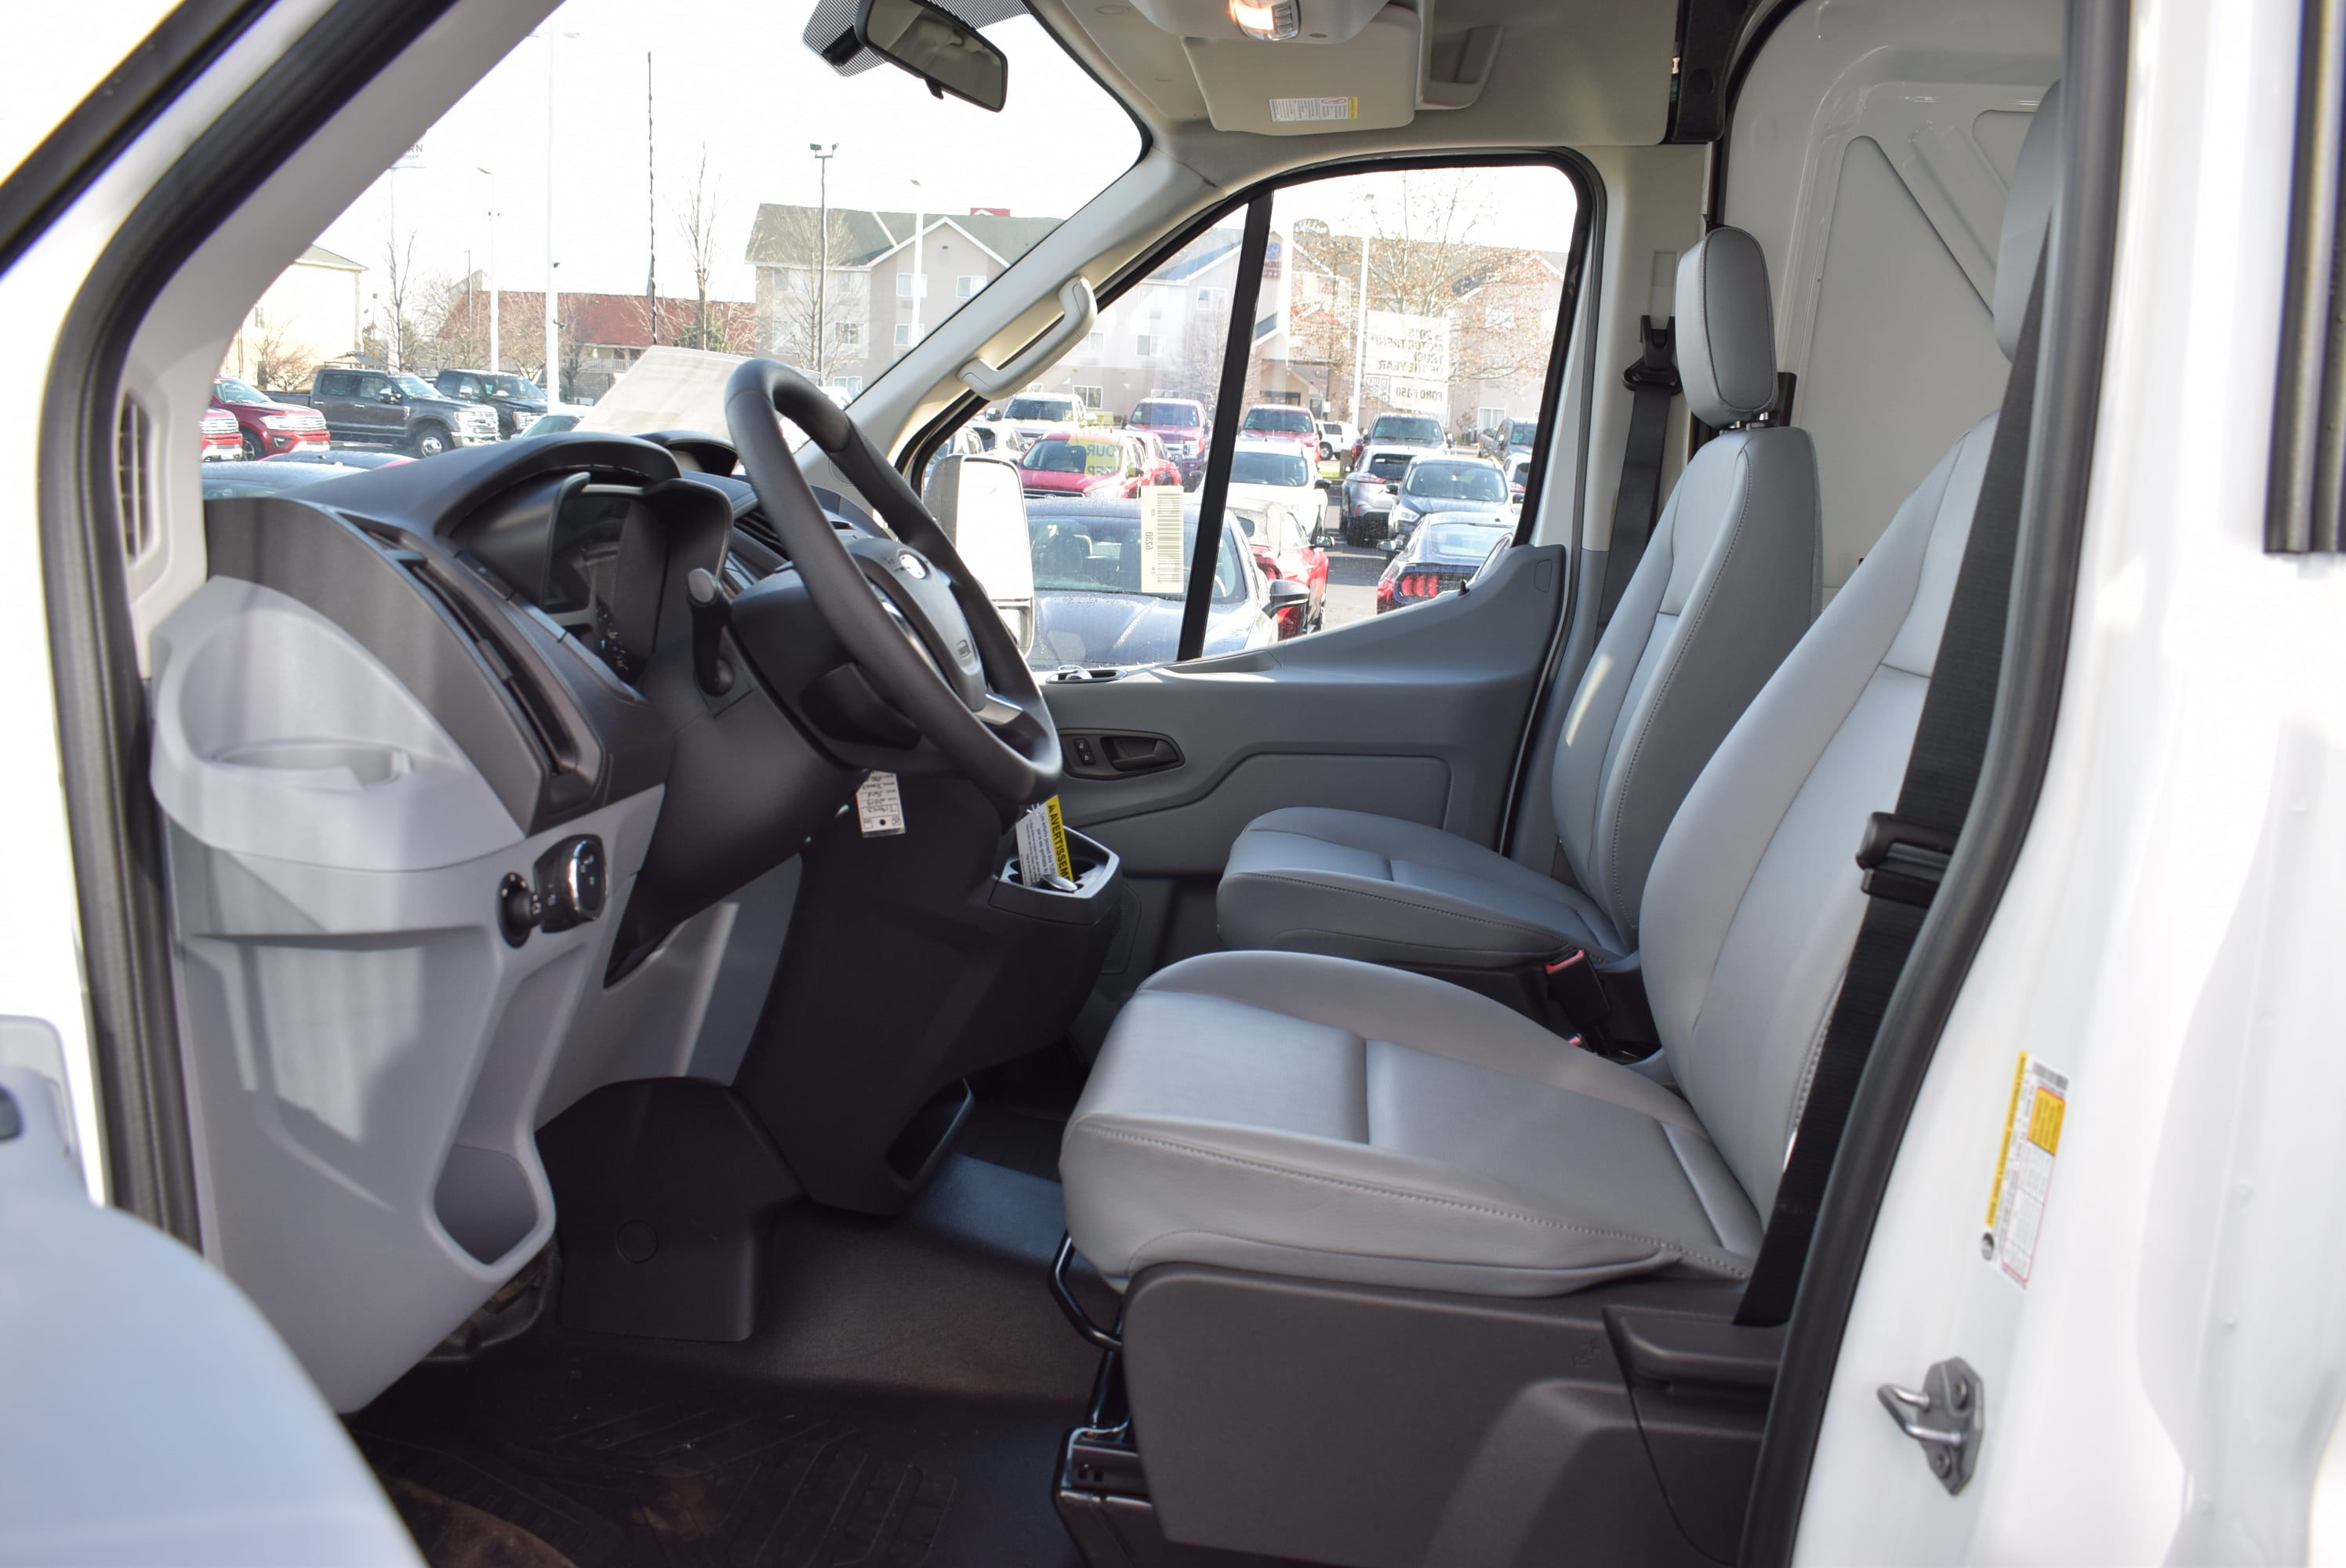 2019 Transit 250 Med Roof 4x2,  Empty Cargo Van #T19043 - photo 18